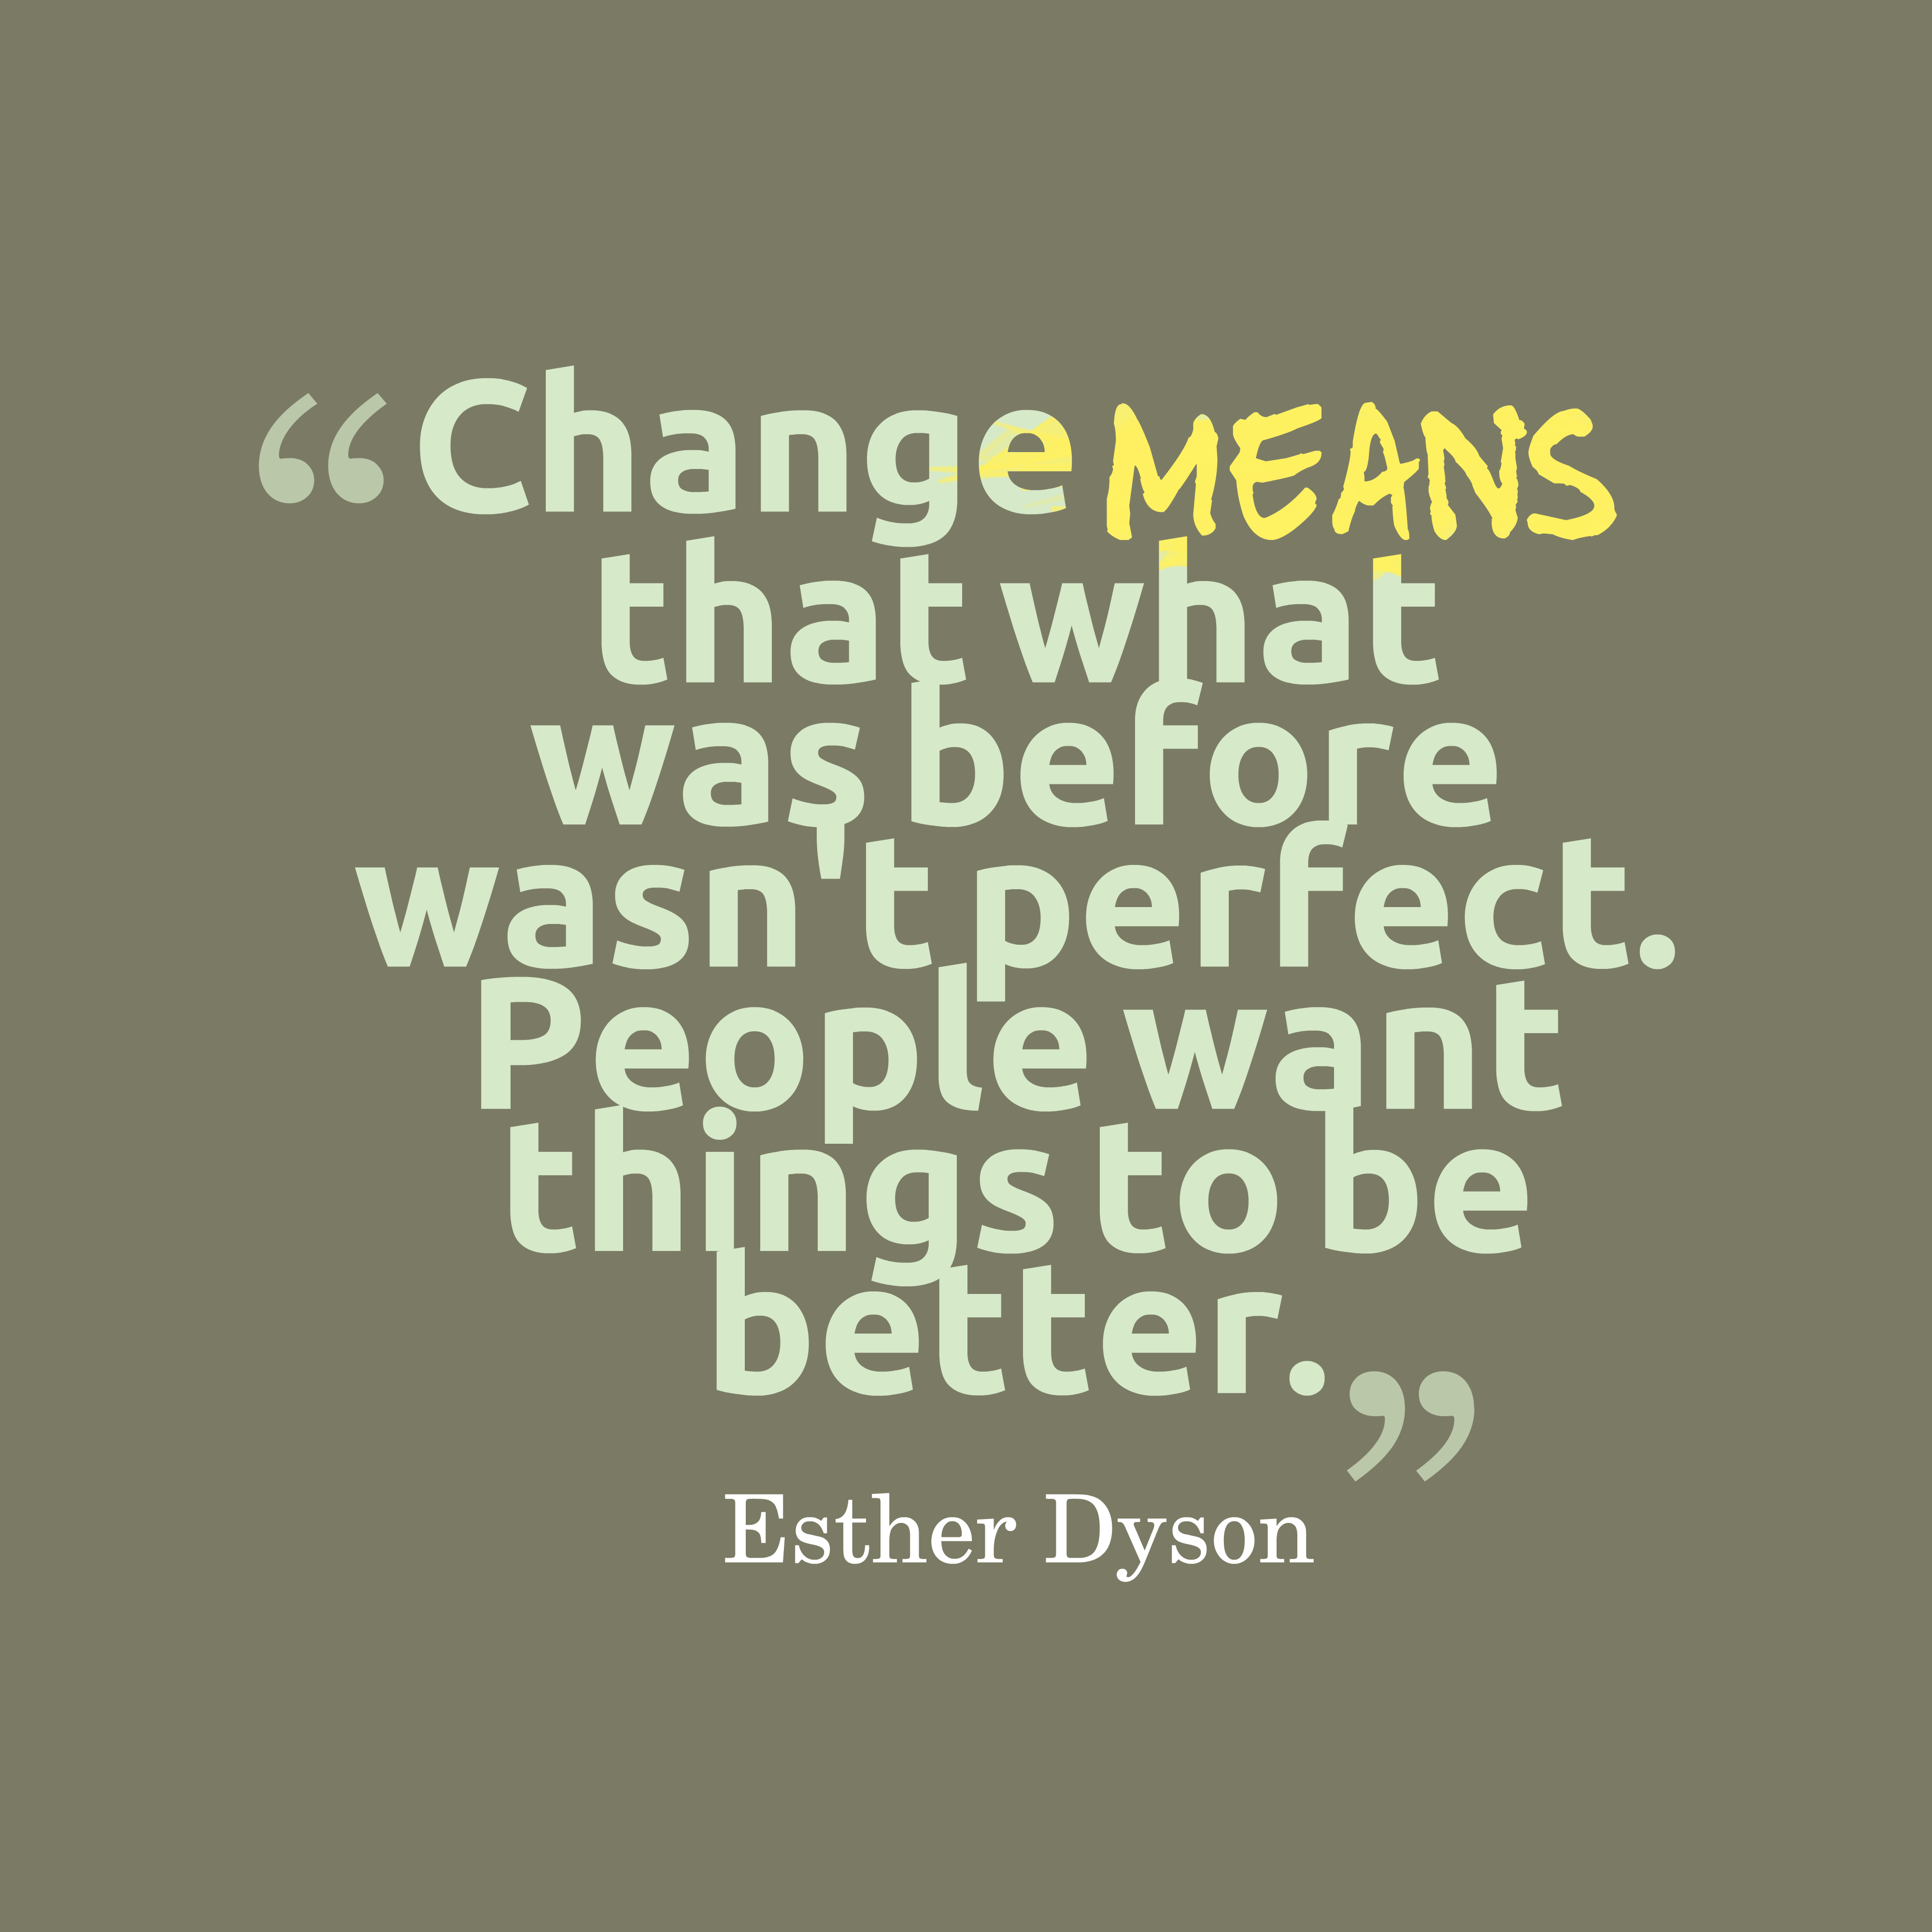 Quotes About Change: Quotes About Change For The Better (152 Quotes